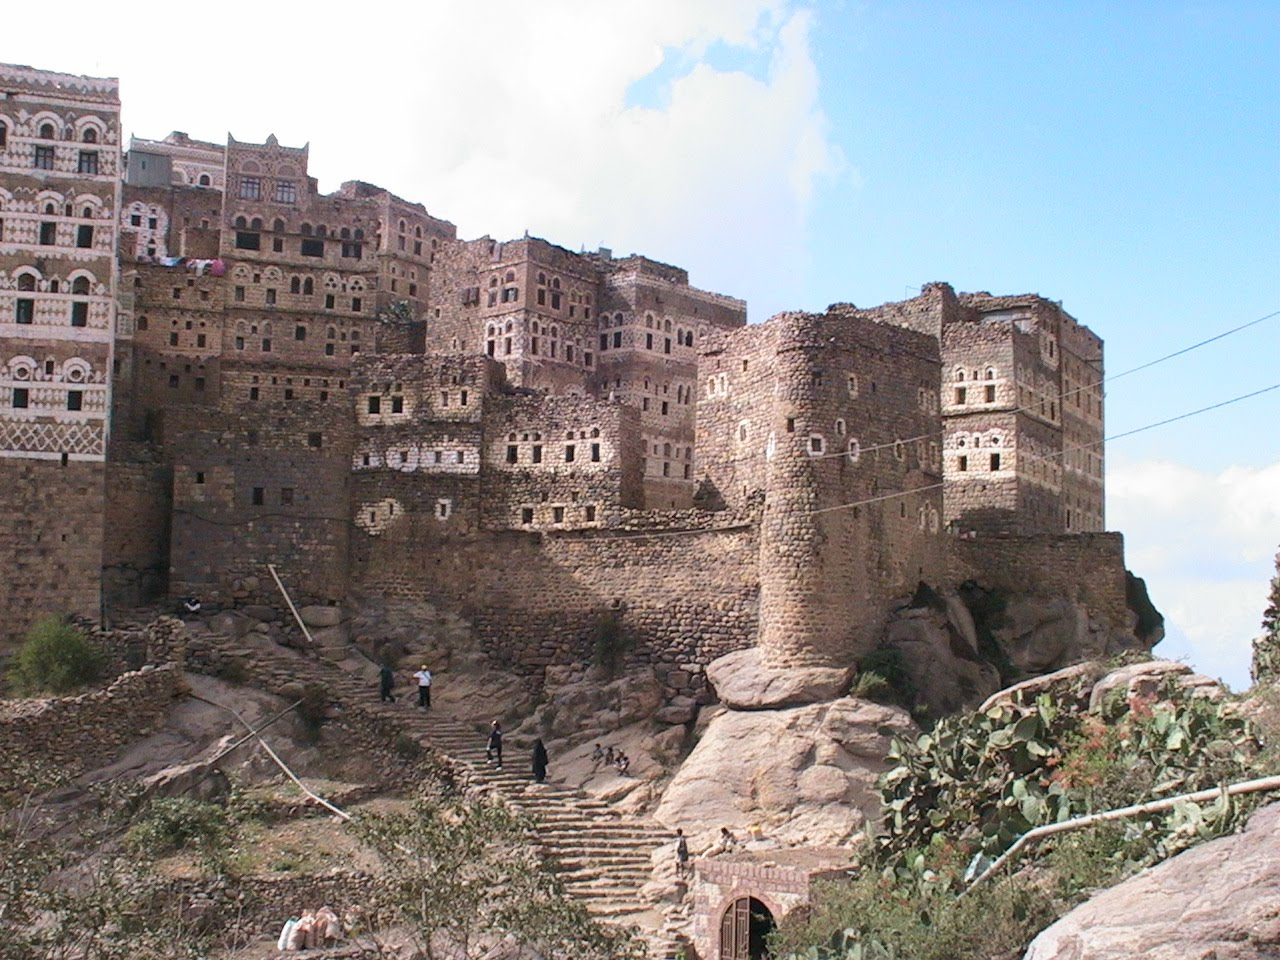 Phoebettmh Travel: (Yemen) - Al Hajarah - Walled city in ...